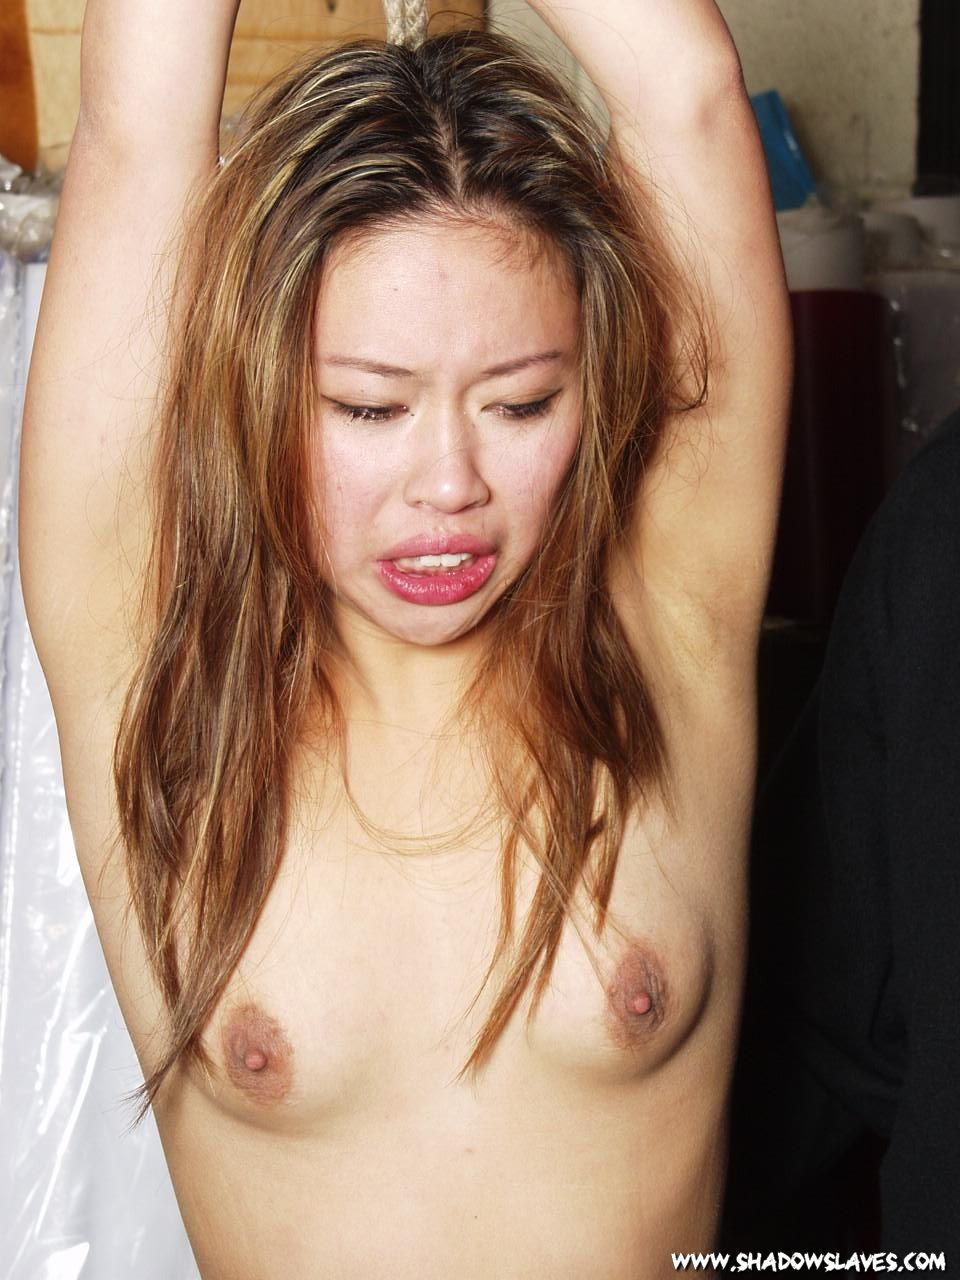 Hustler asian sex